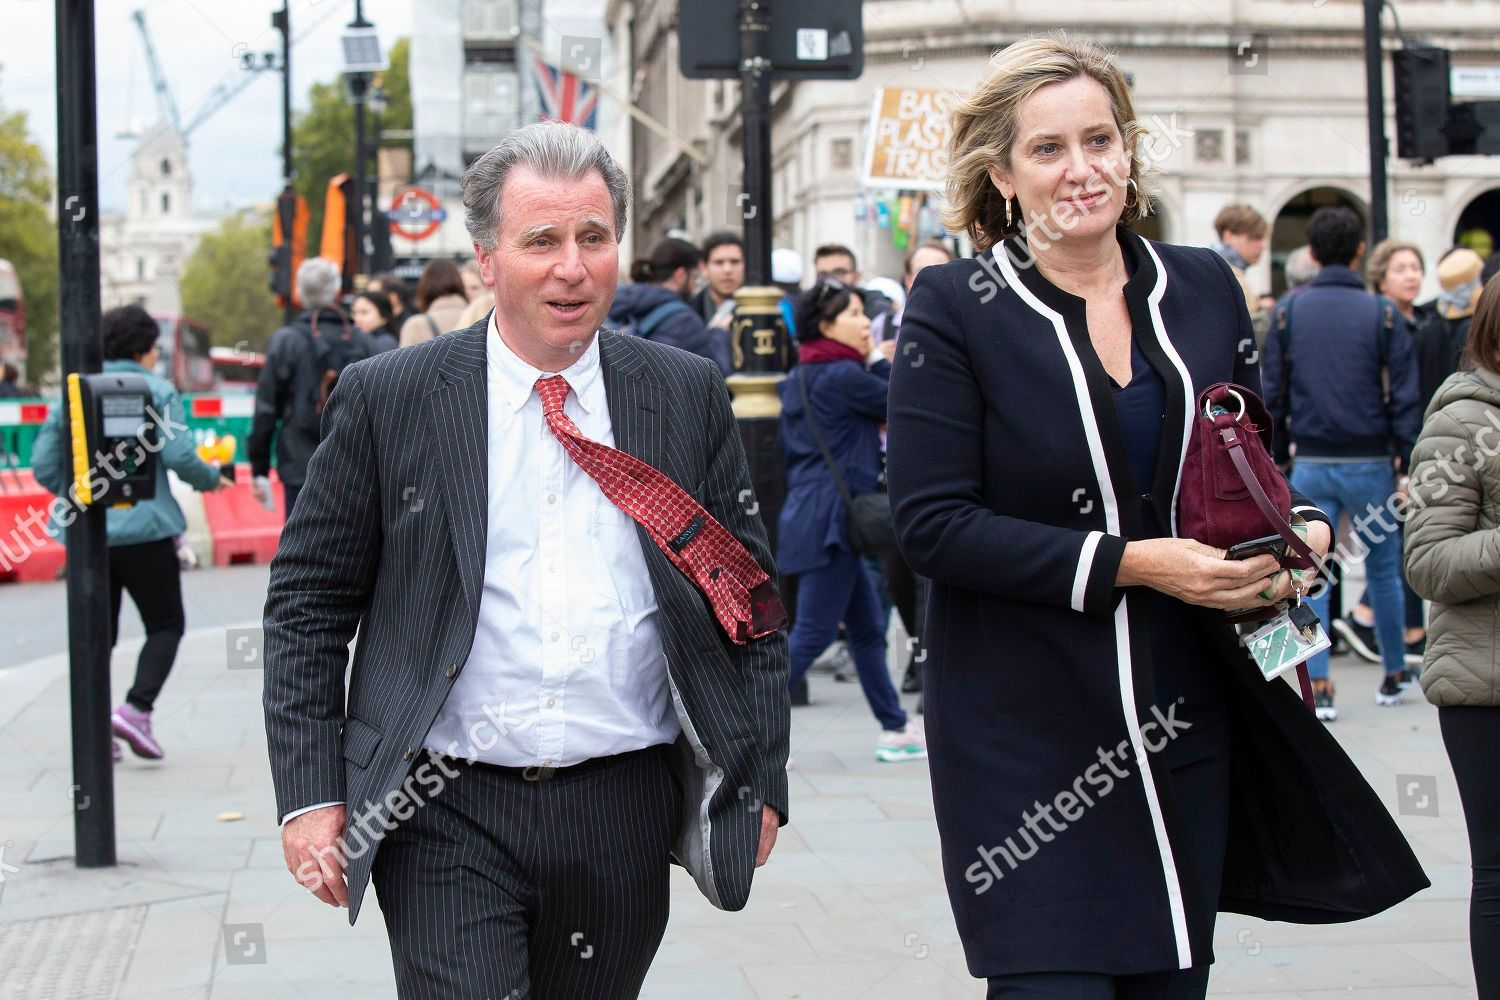 Photo libre de droits de Politicians in London, UK - 03 Oct 2019